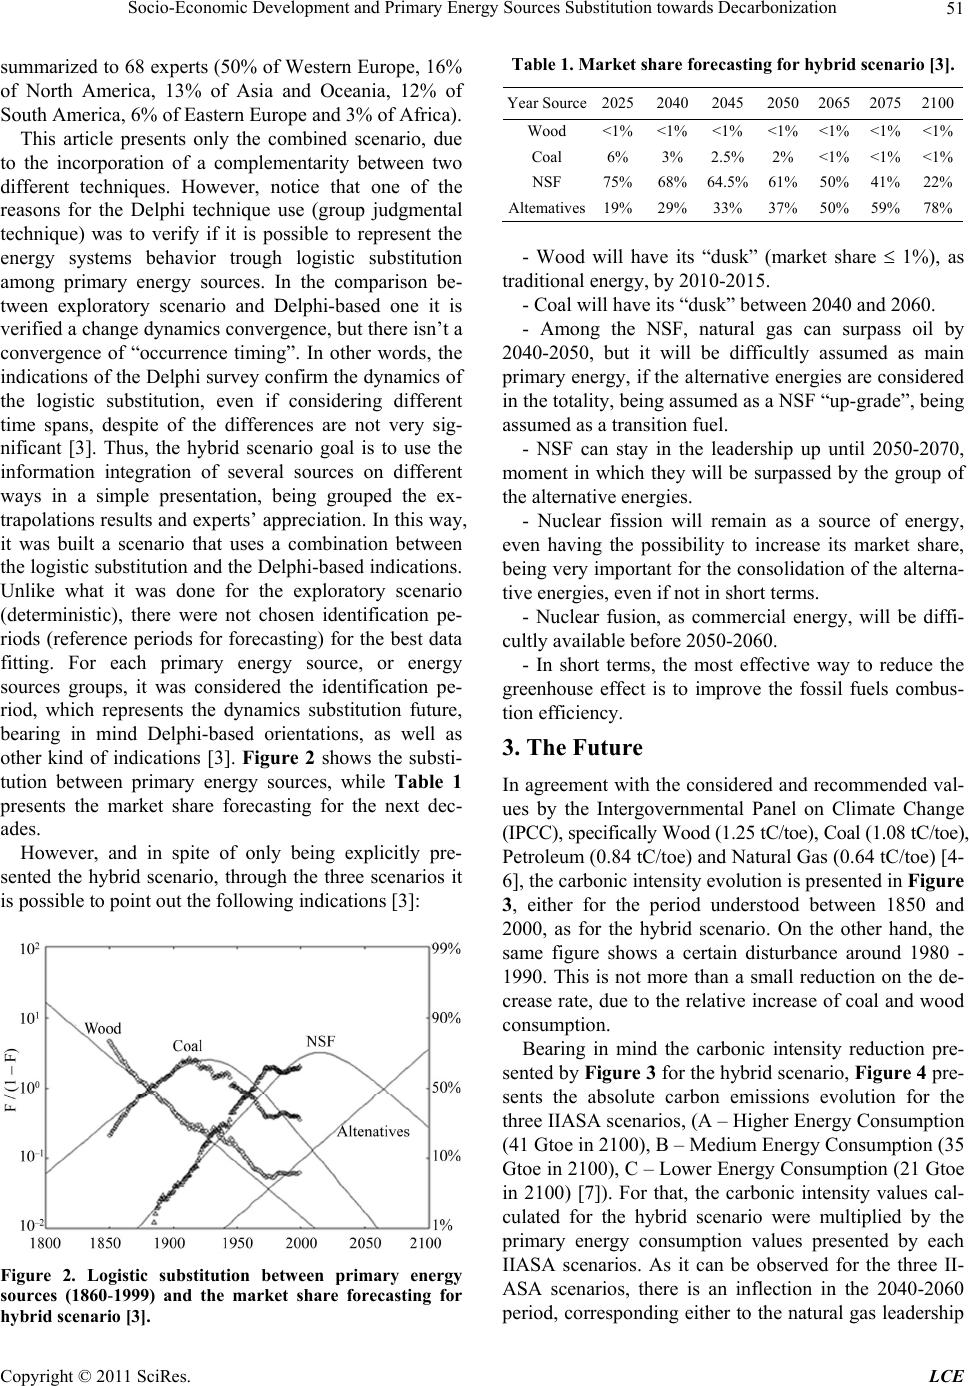 american economic development essay The economics essay below has been submitted to us by a student in order to help you with your studies subsequently, in the aftermath of cultural revolution, the chinese leaders adopted an economic development strategy to transform into market-based from its centrally-planned in 1978.